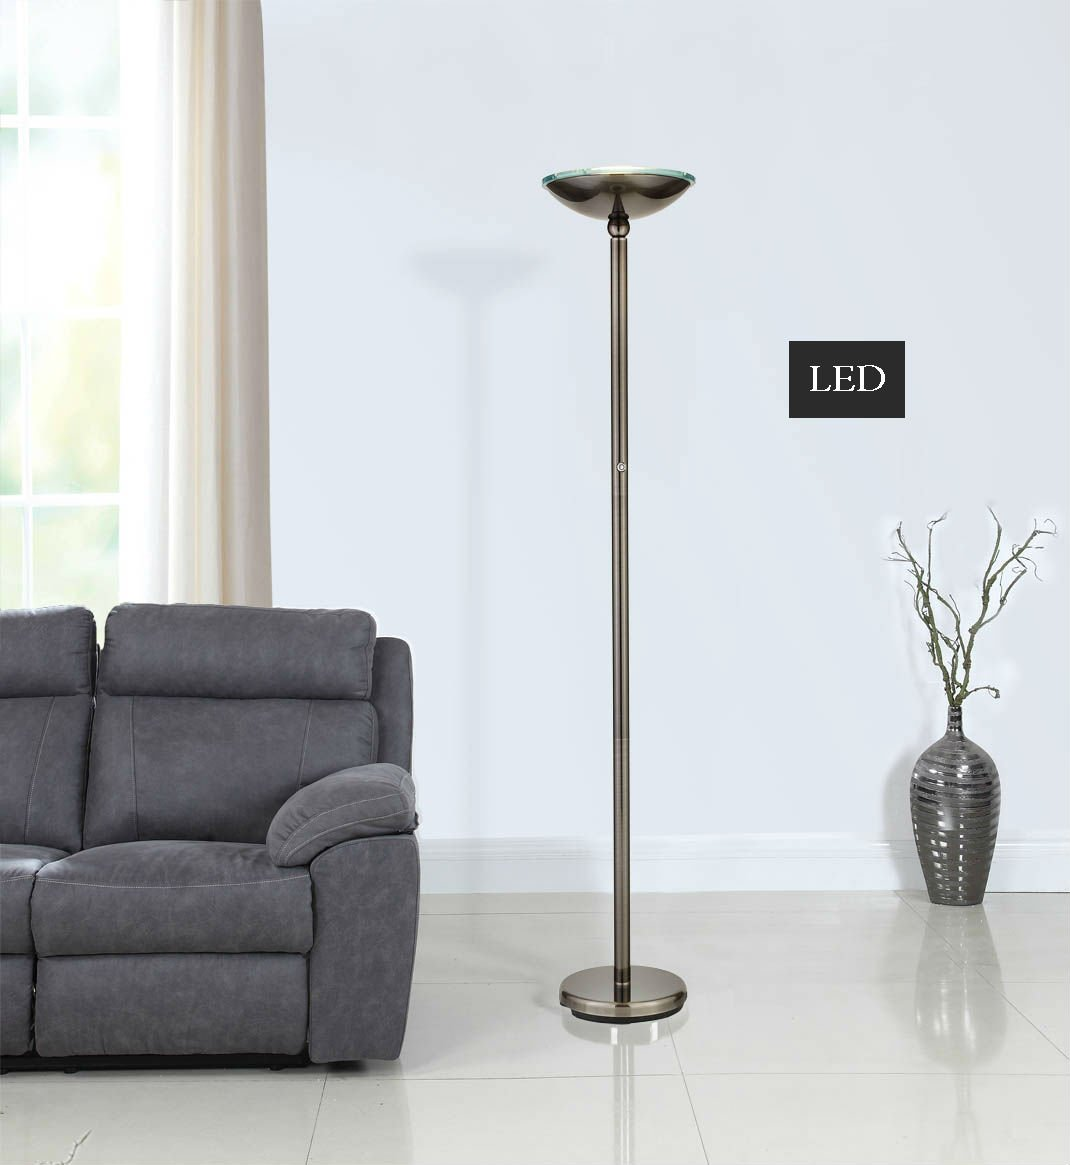 Artiva USA LED9485BSN LED Torchiere Floor Lamp with Touch Dimmer, 71'', Saturn Black Brushed Steel